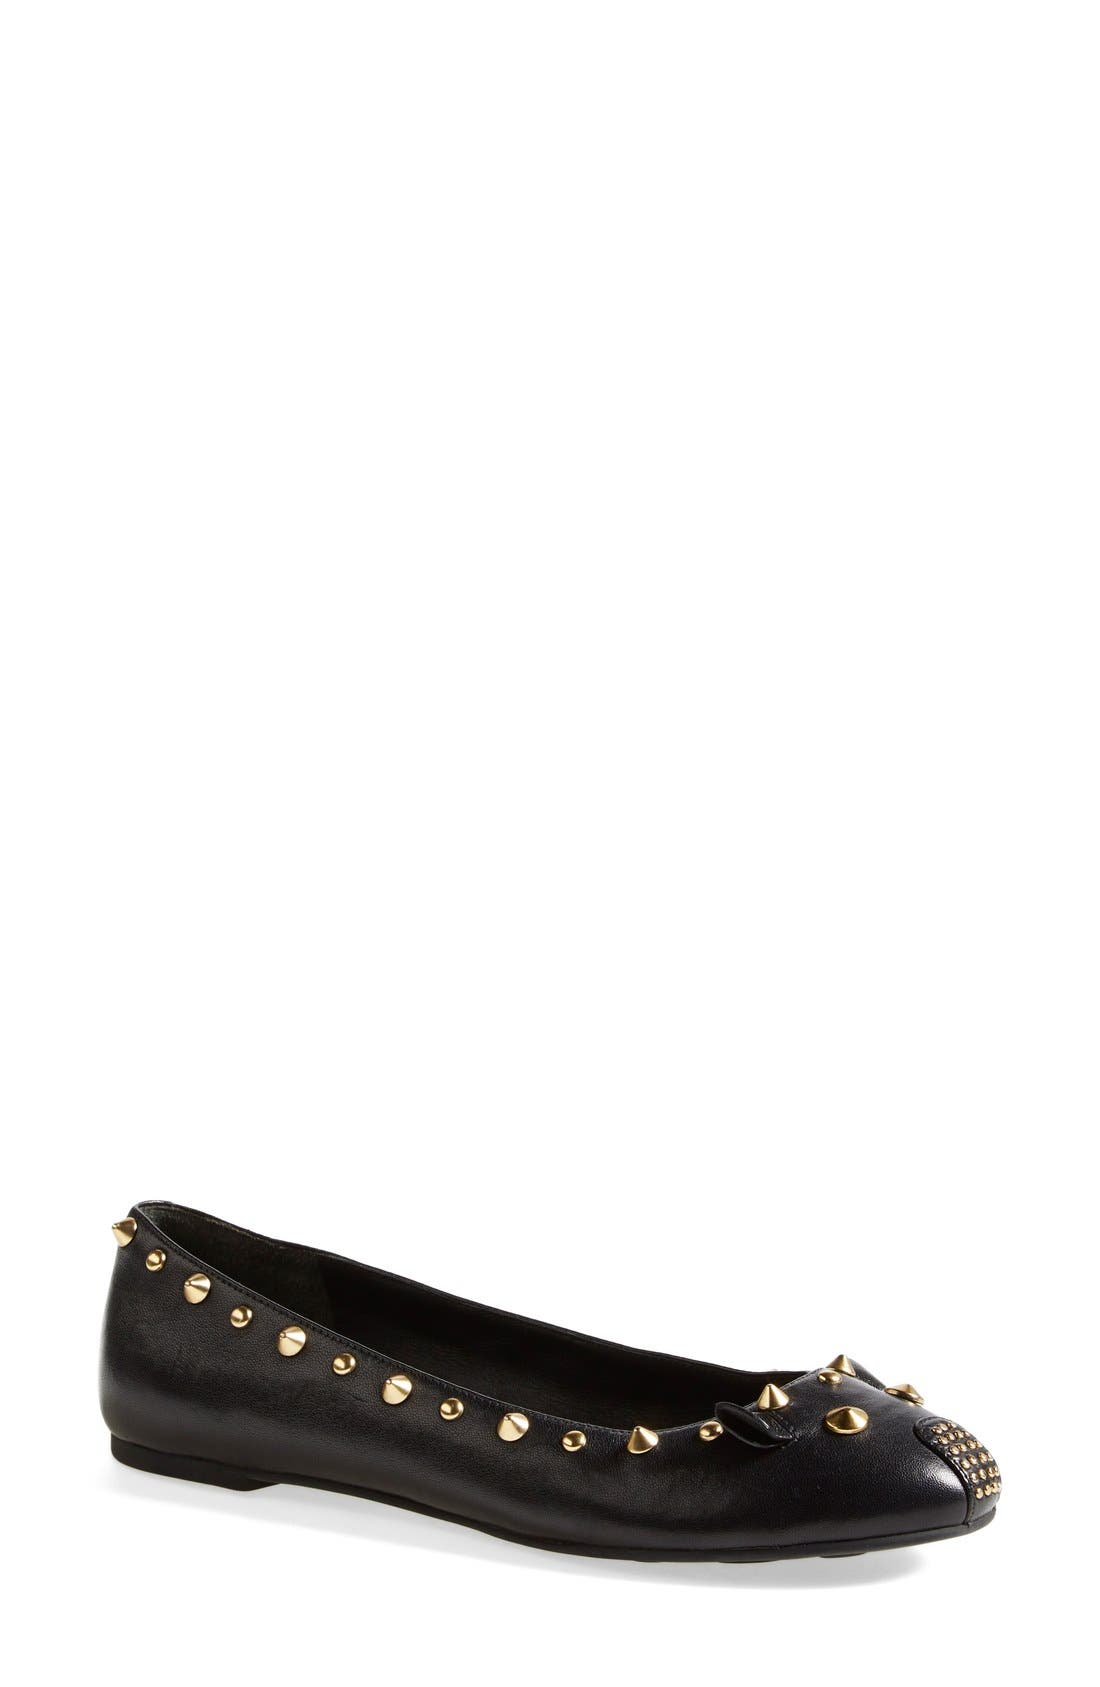 MARC BY MARC JACOBS 'Punk Mouse' Ballerina Flat,                             Main thumbnail 1, color,                             001